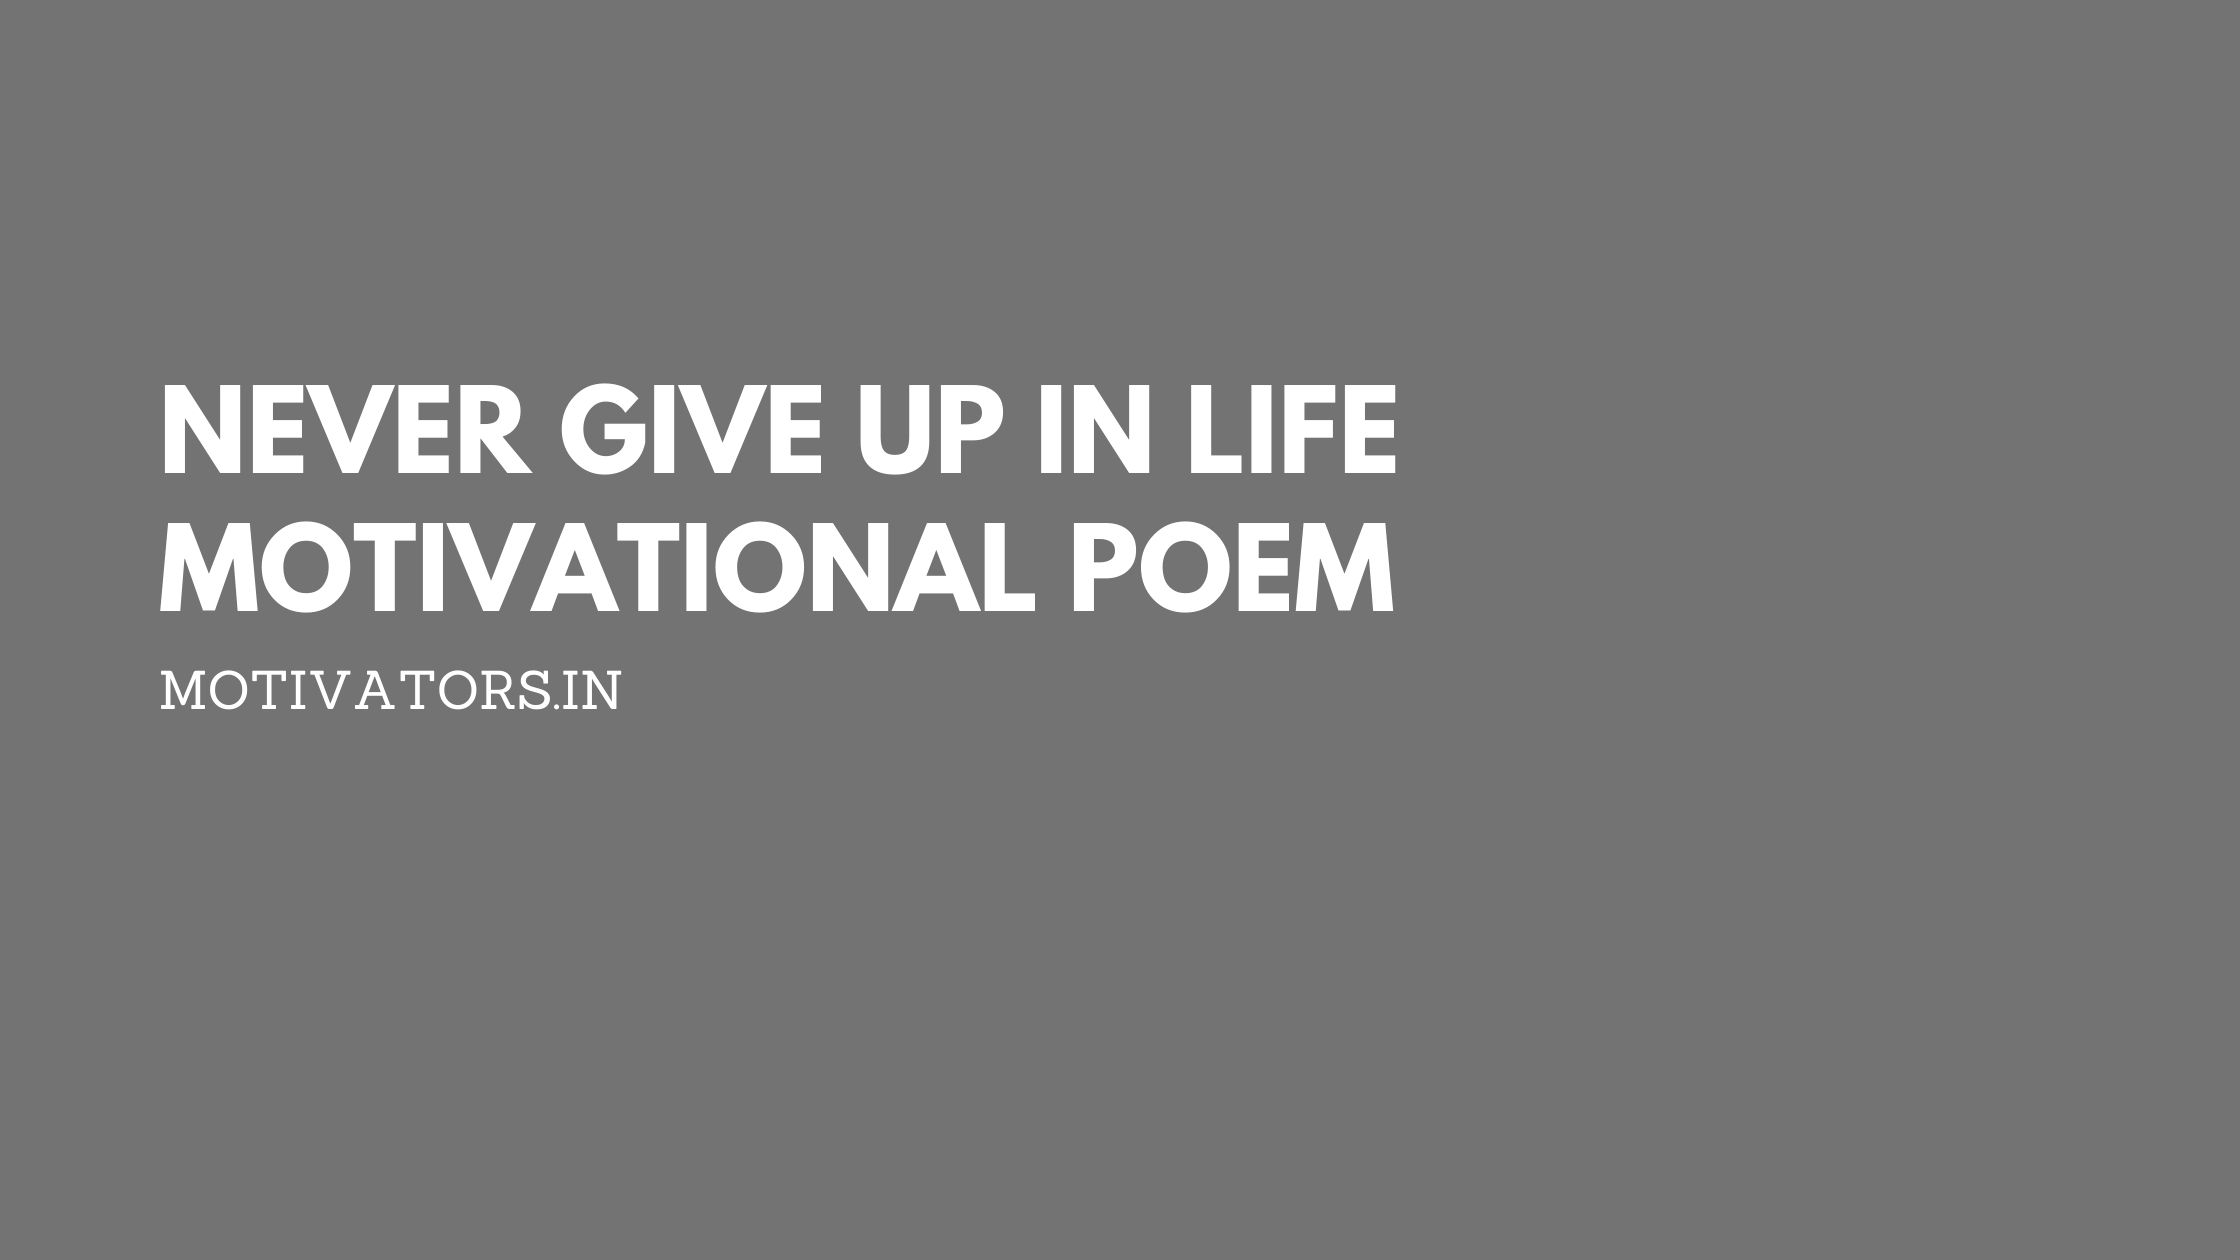 Never Give Up In Life Motivational Poem